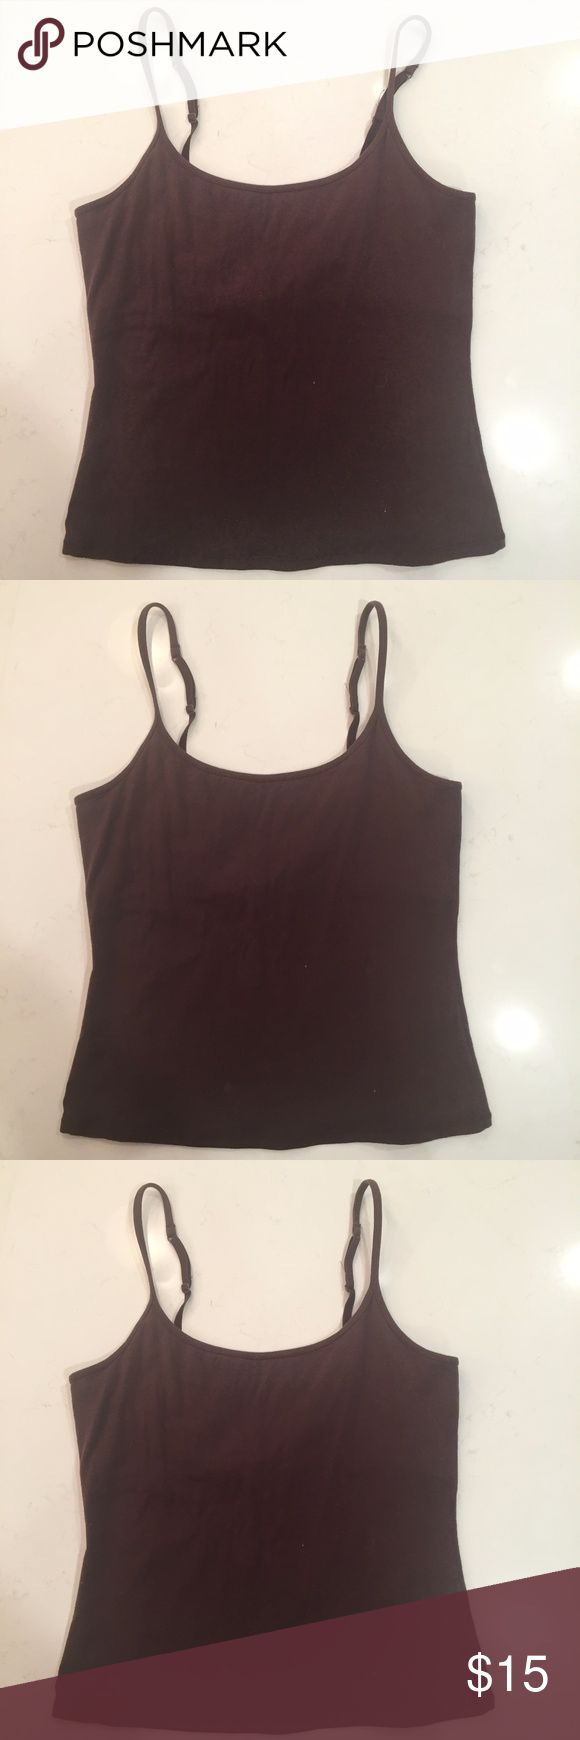 Lady Foot Locker Cami Tank with shelf bra Lady Foot Locker Cami Tank with shelf bra Size: M Adjustable straps Brown See photos for condition. Lady Foot Locker Tops Camisoles